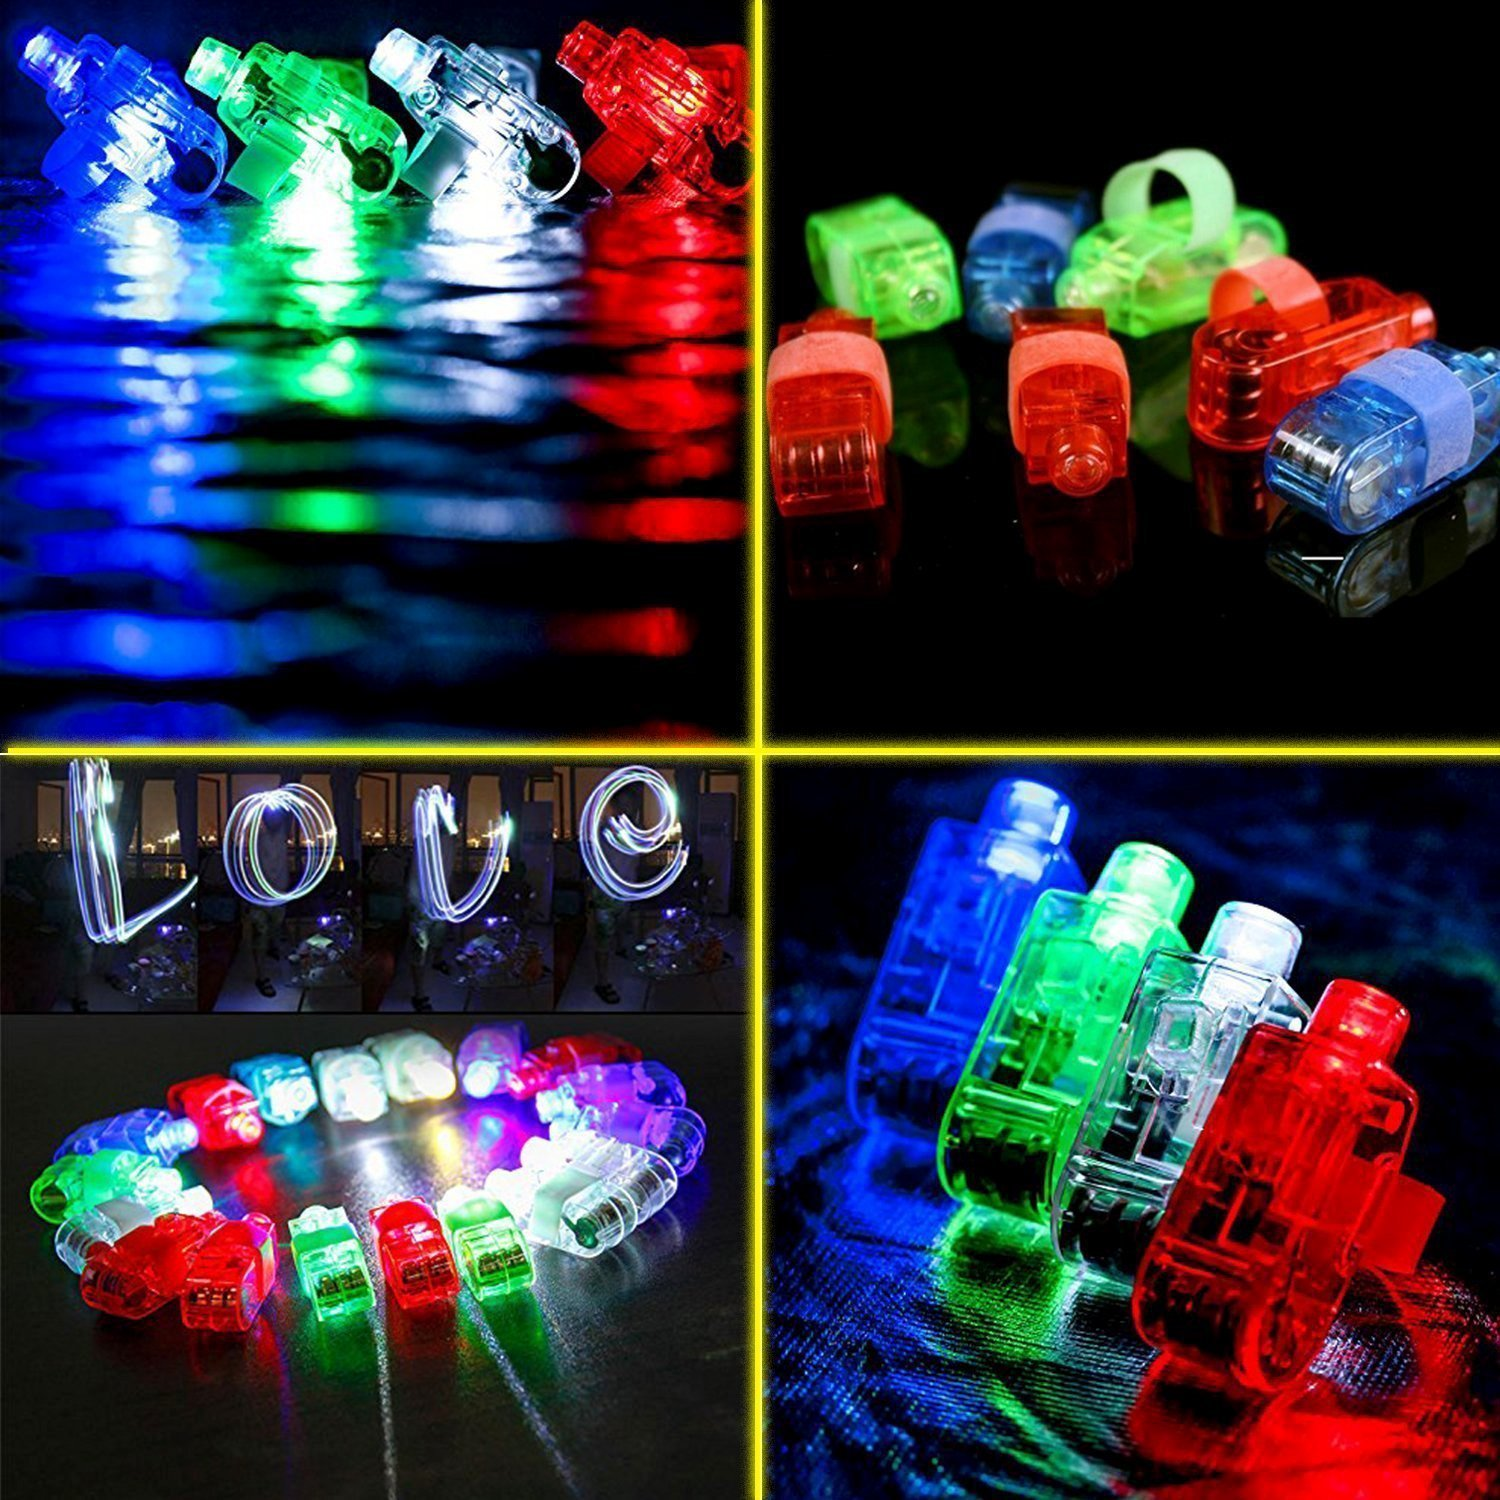 68 Pack LED Light Up Toys Halloween LED Glow Party Favors for Kids Glow in the Dark Party Supplies 4 Flashing Slotted Shades Glasses 10 Glow Rings 50 LED Finger Lights 5 LED Bracelets Christmas Gift by Godlike (Image #3)